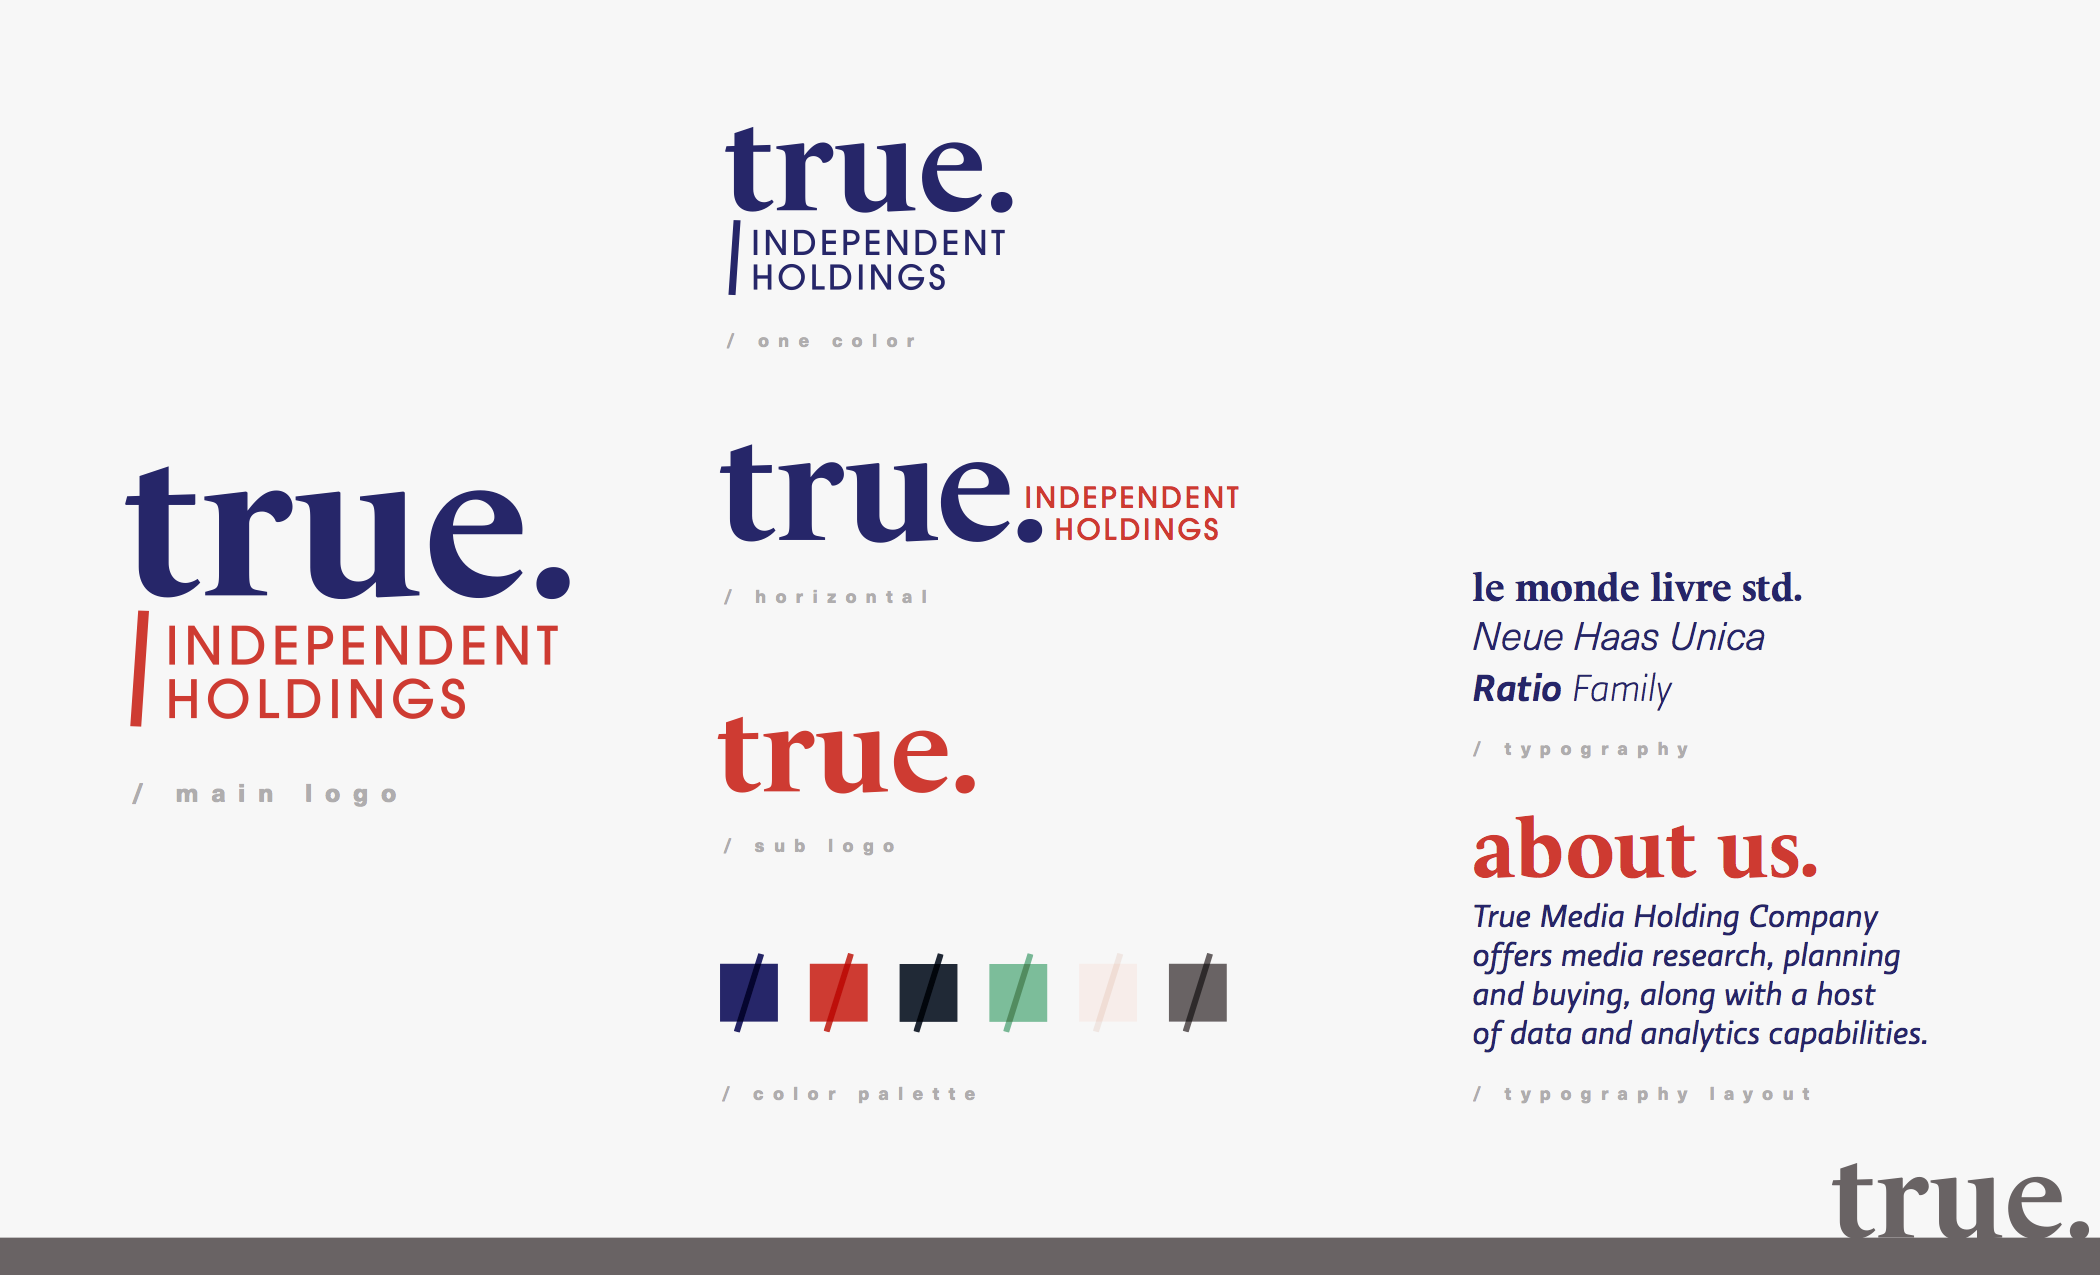 We end with a complete visual brand - Now True Independent Holdings has a look that matches their expertise. This sleek brand is sure to speak to their dream client after just one glance.